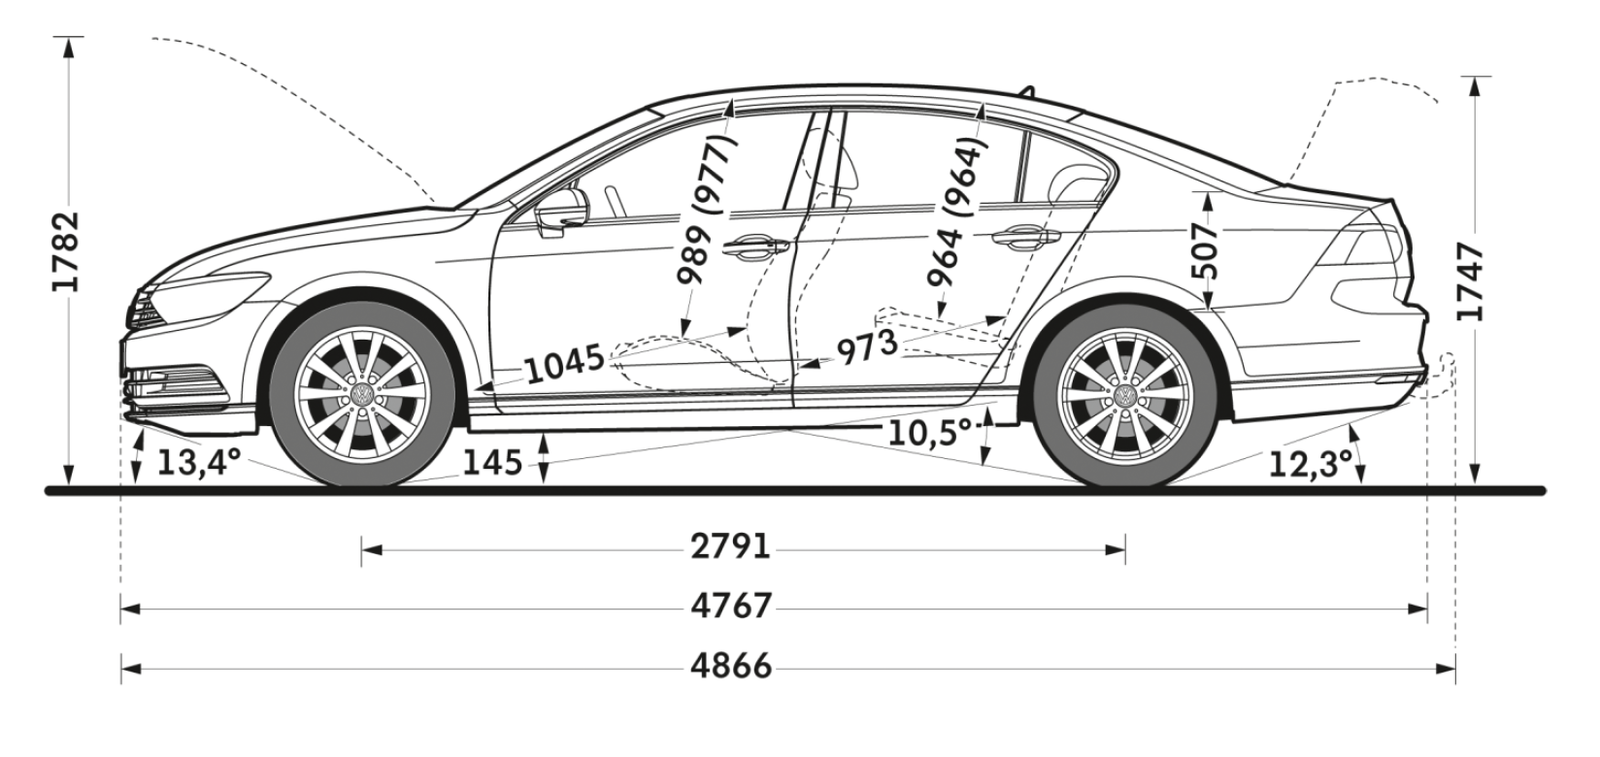 T25751767 Location barometric sensor ford explorer also 4oaeu Ford Focus Ses 2007 Ford Focus Rear End Dances Bump Stear There furthermore 121543275213 in addition Schematics h also 1965 Ford Truck Electrical Wiring. on 2012 ford focus hatchback